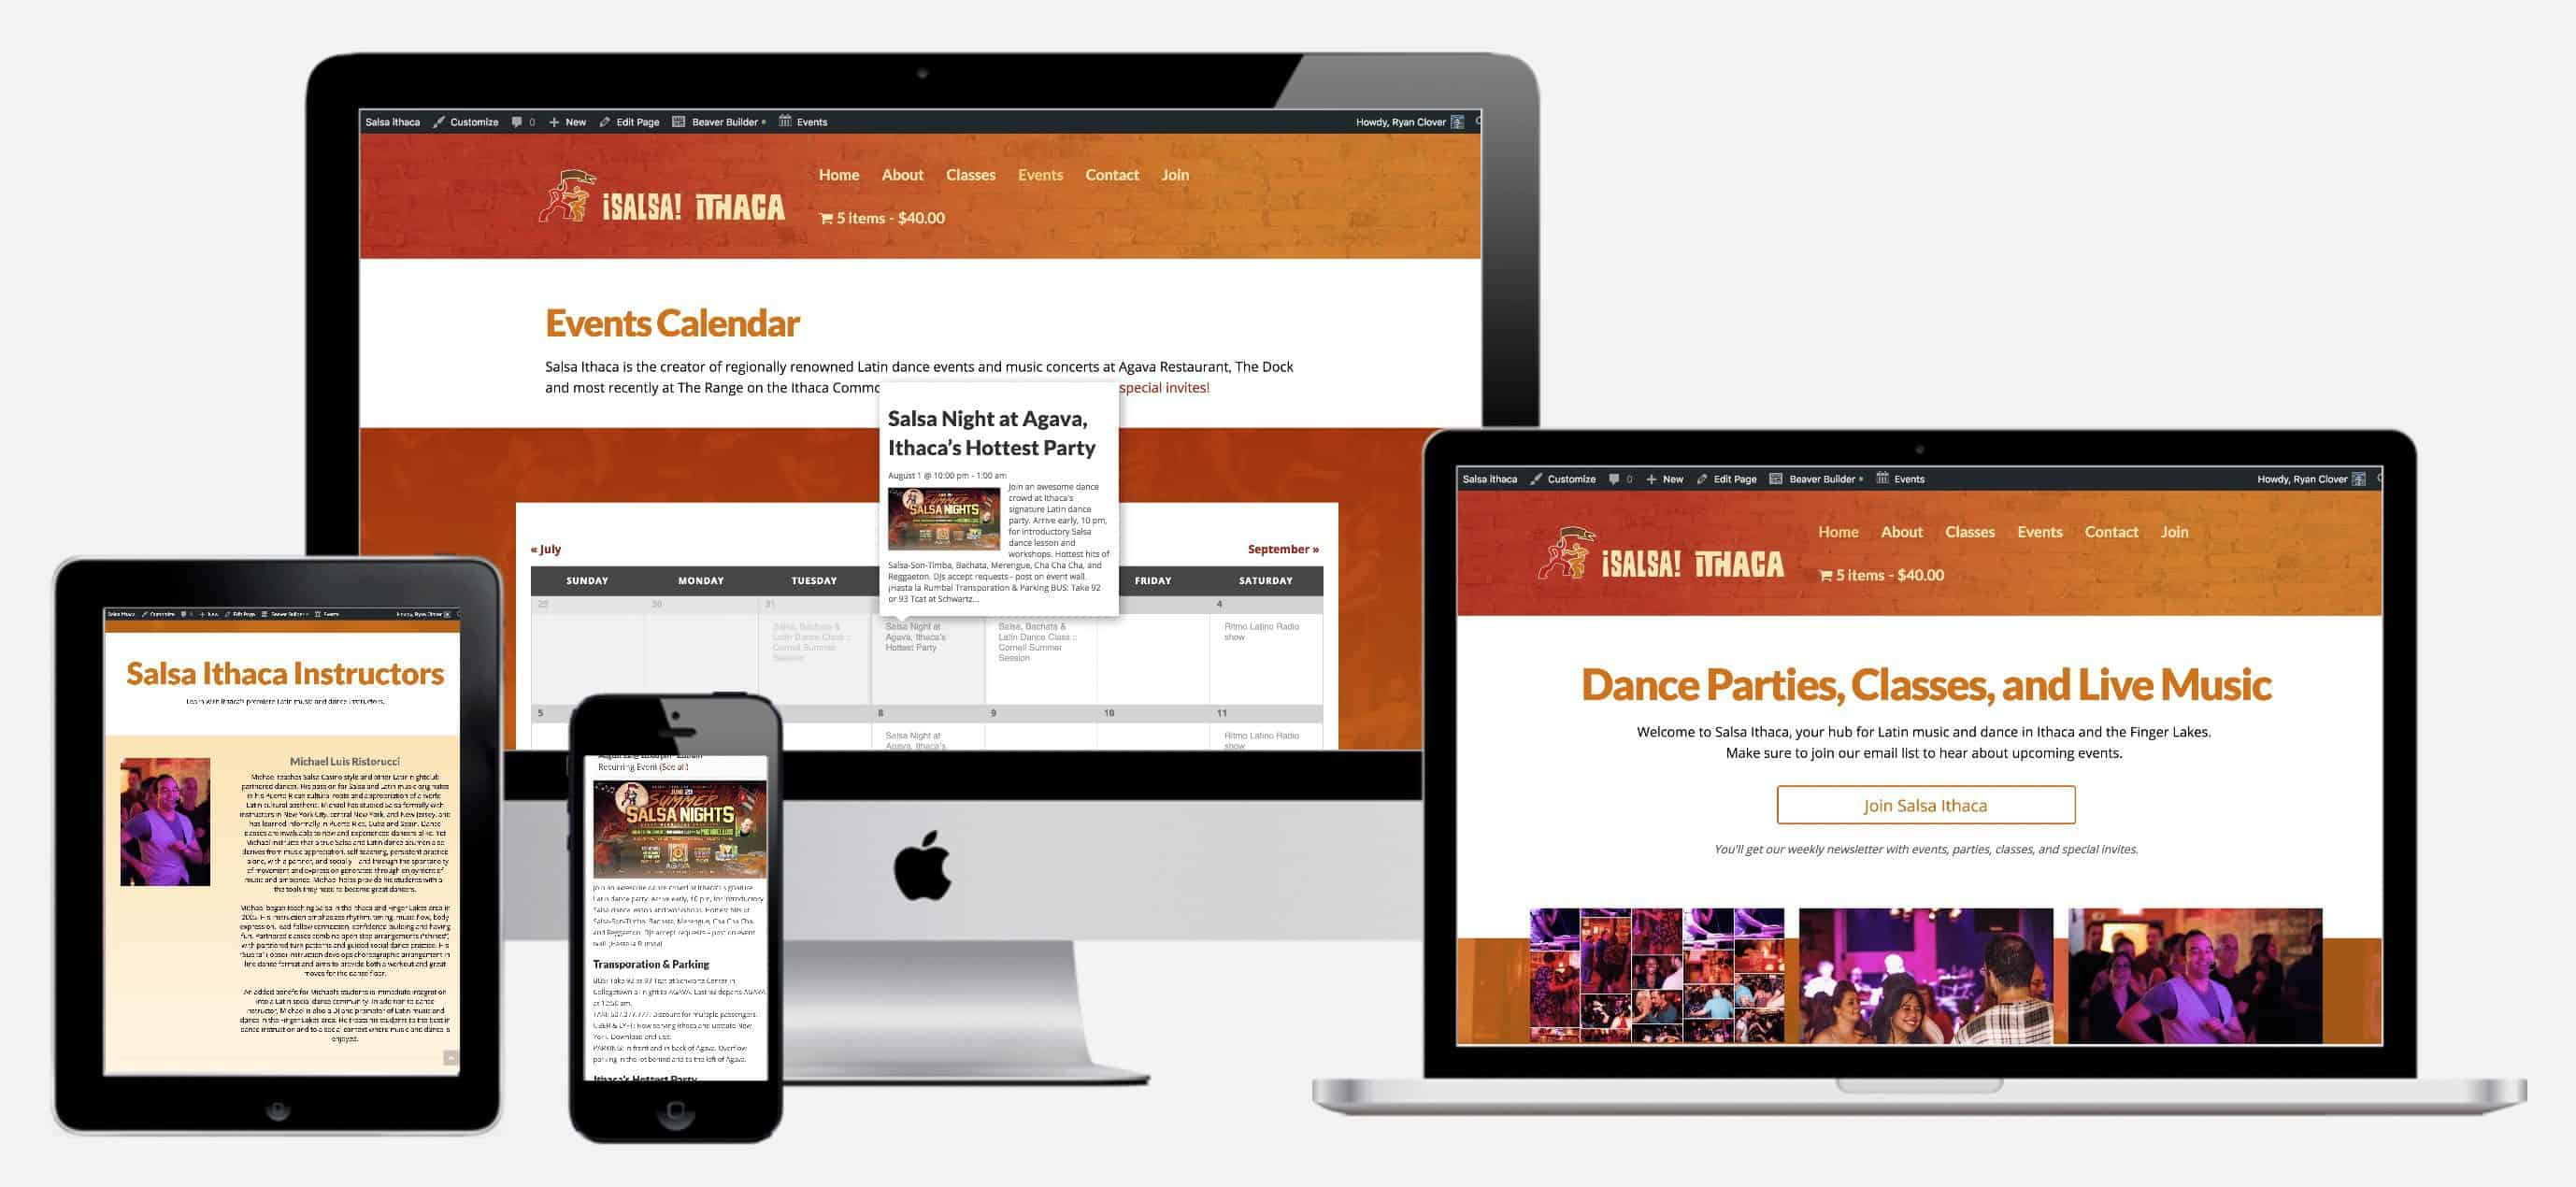 Salsa Ithaca uses Maple to keep their website up to date with local events and ticket sales.